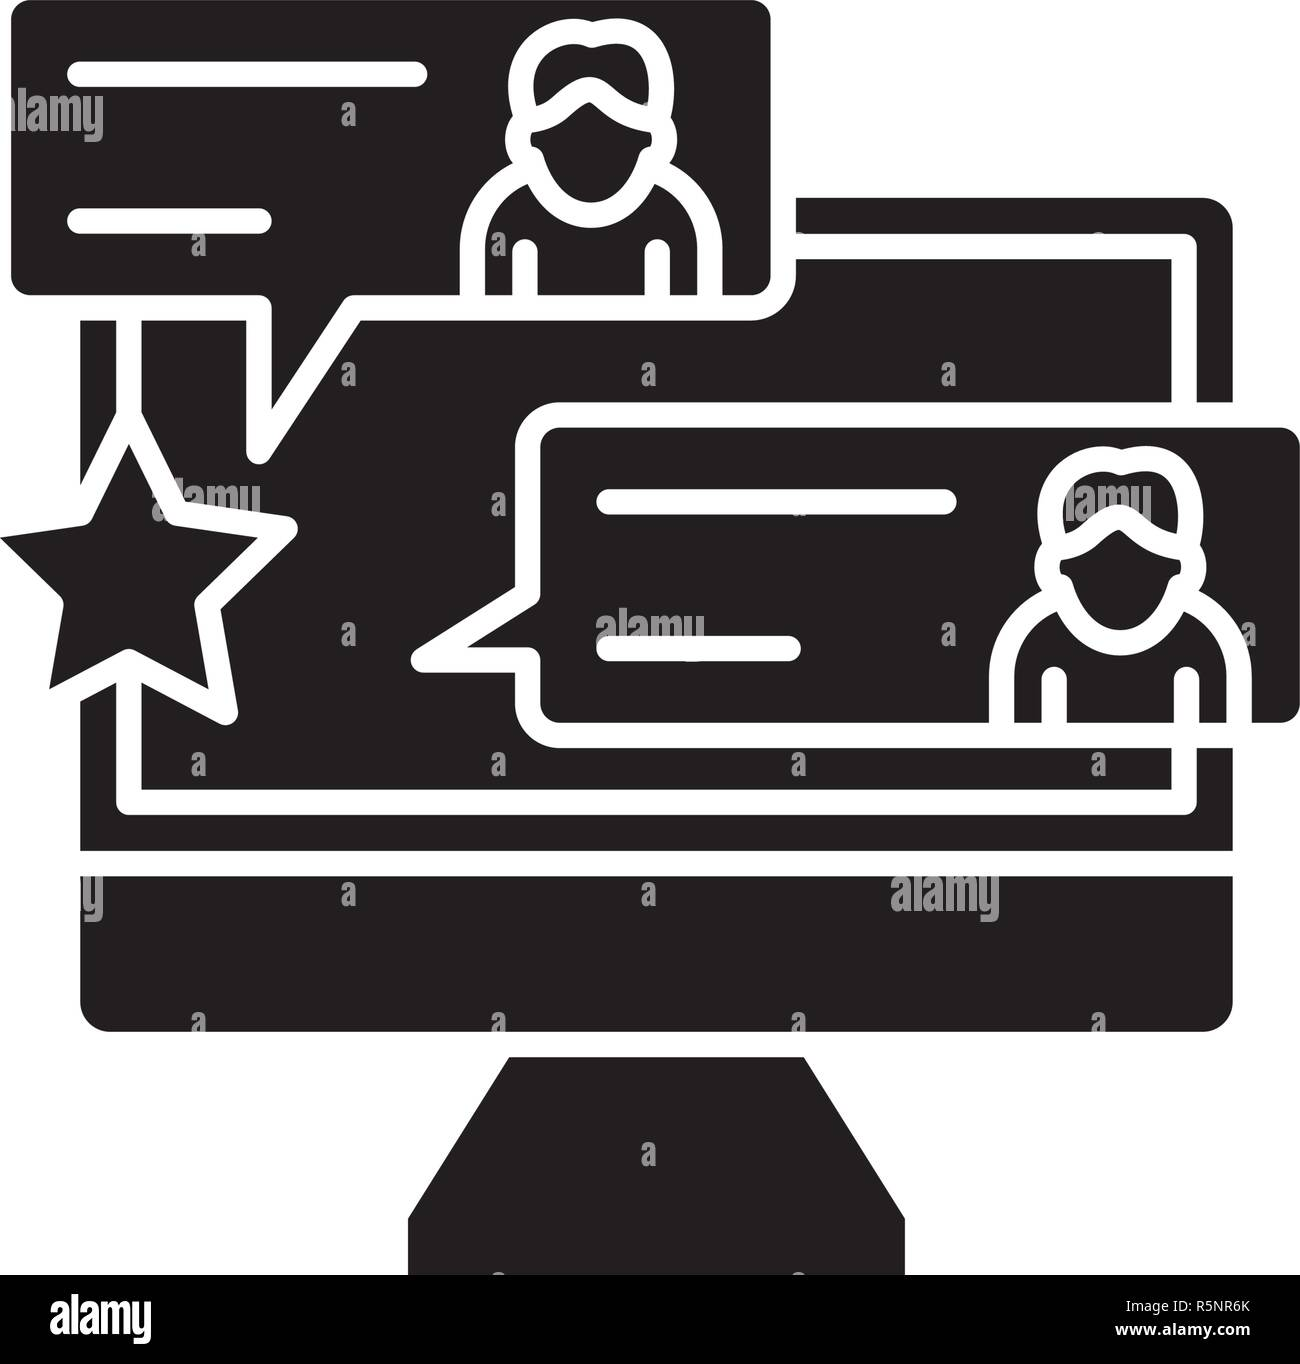 Reviews black icon, vector sign on isolated background. Reviews concept symbol, illustration  - Stock Image